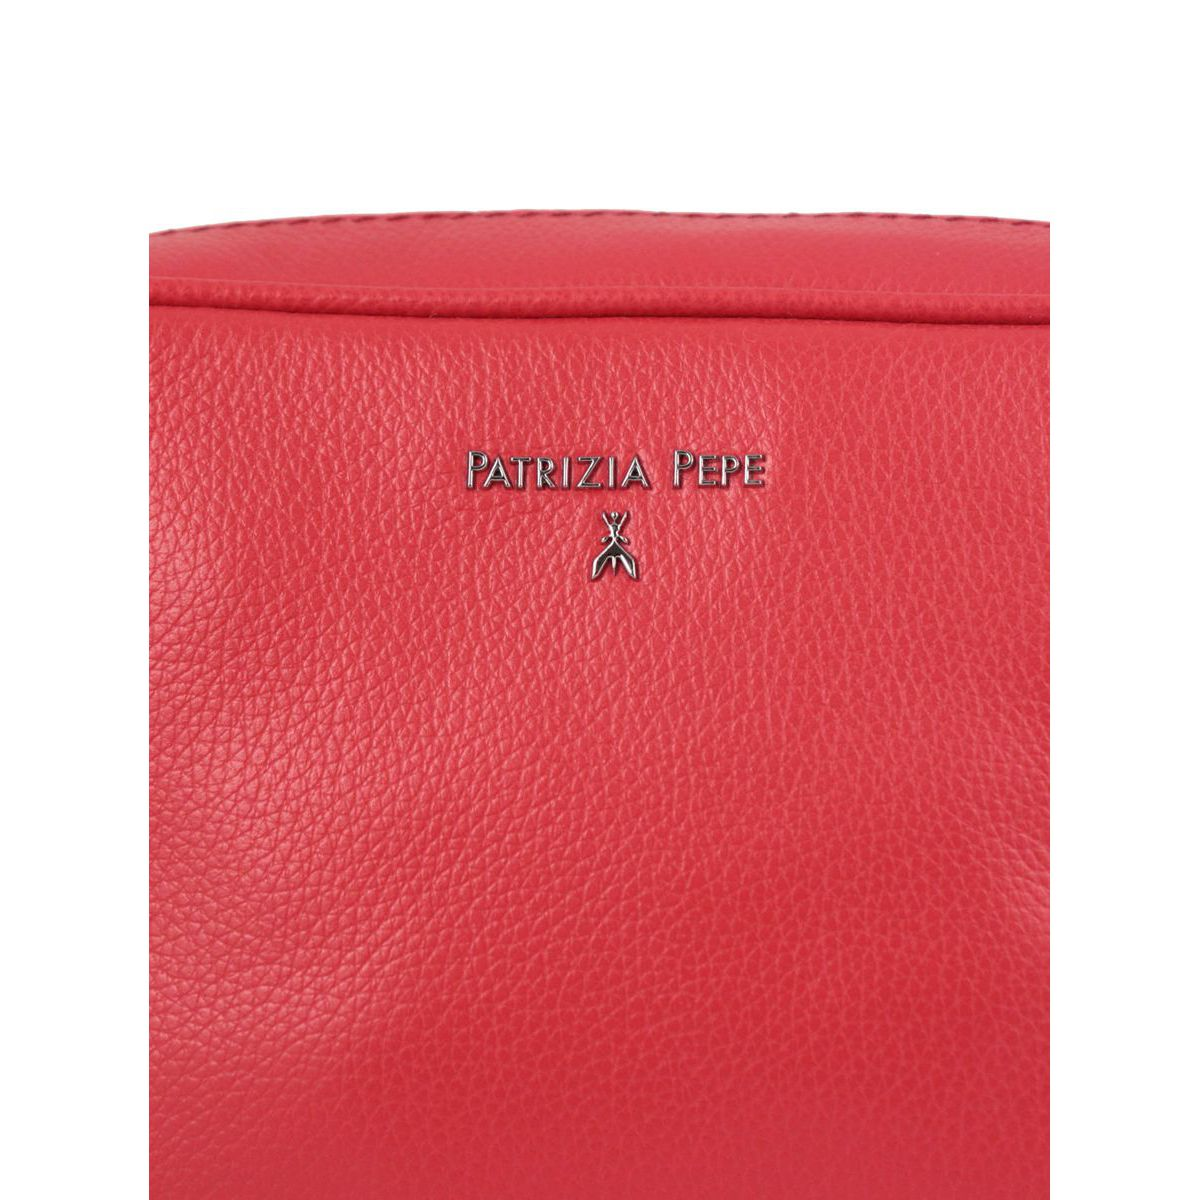 Beauty in textured leather with logo Red Patrizia Pepe